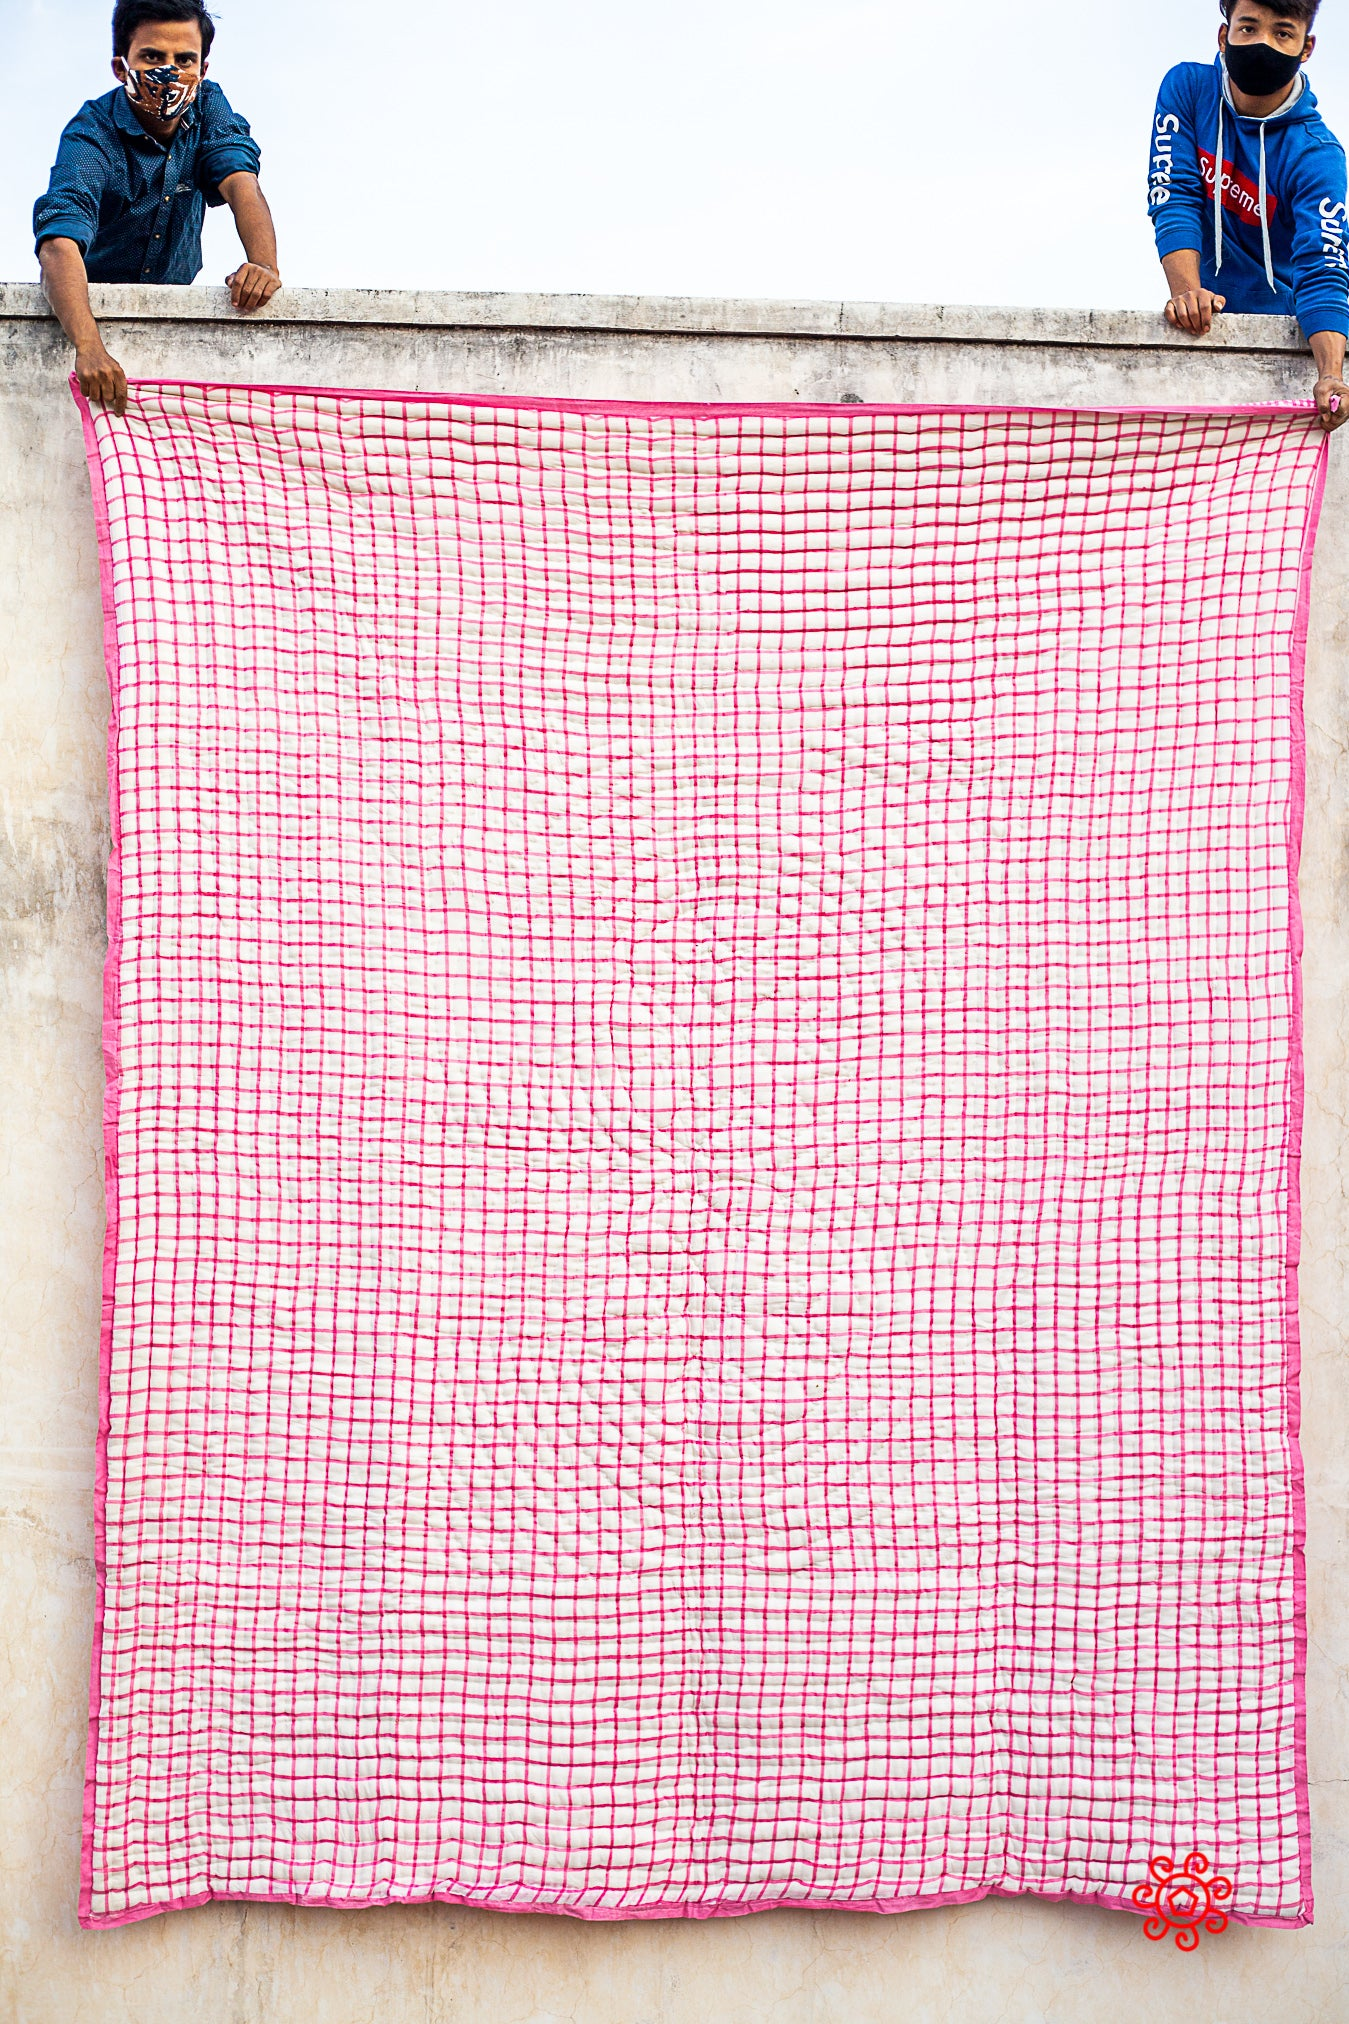 Queen Quilt,100 Percent Handmade, Hand Block printed Quilt, Jaipuri Quilt, Hand Quilted, Natural Cotton filling, Check Carnation Pink QBP 406